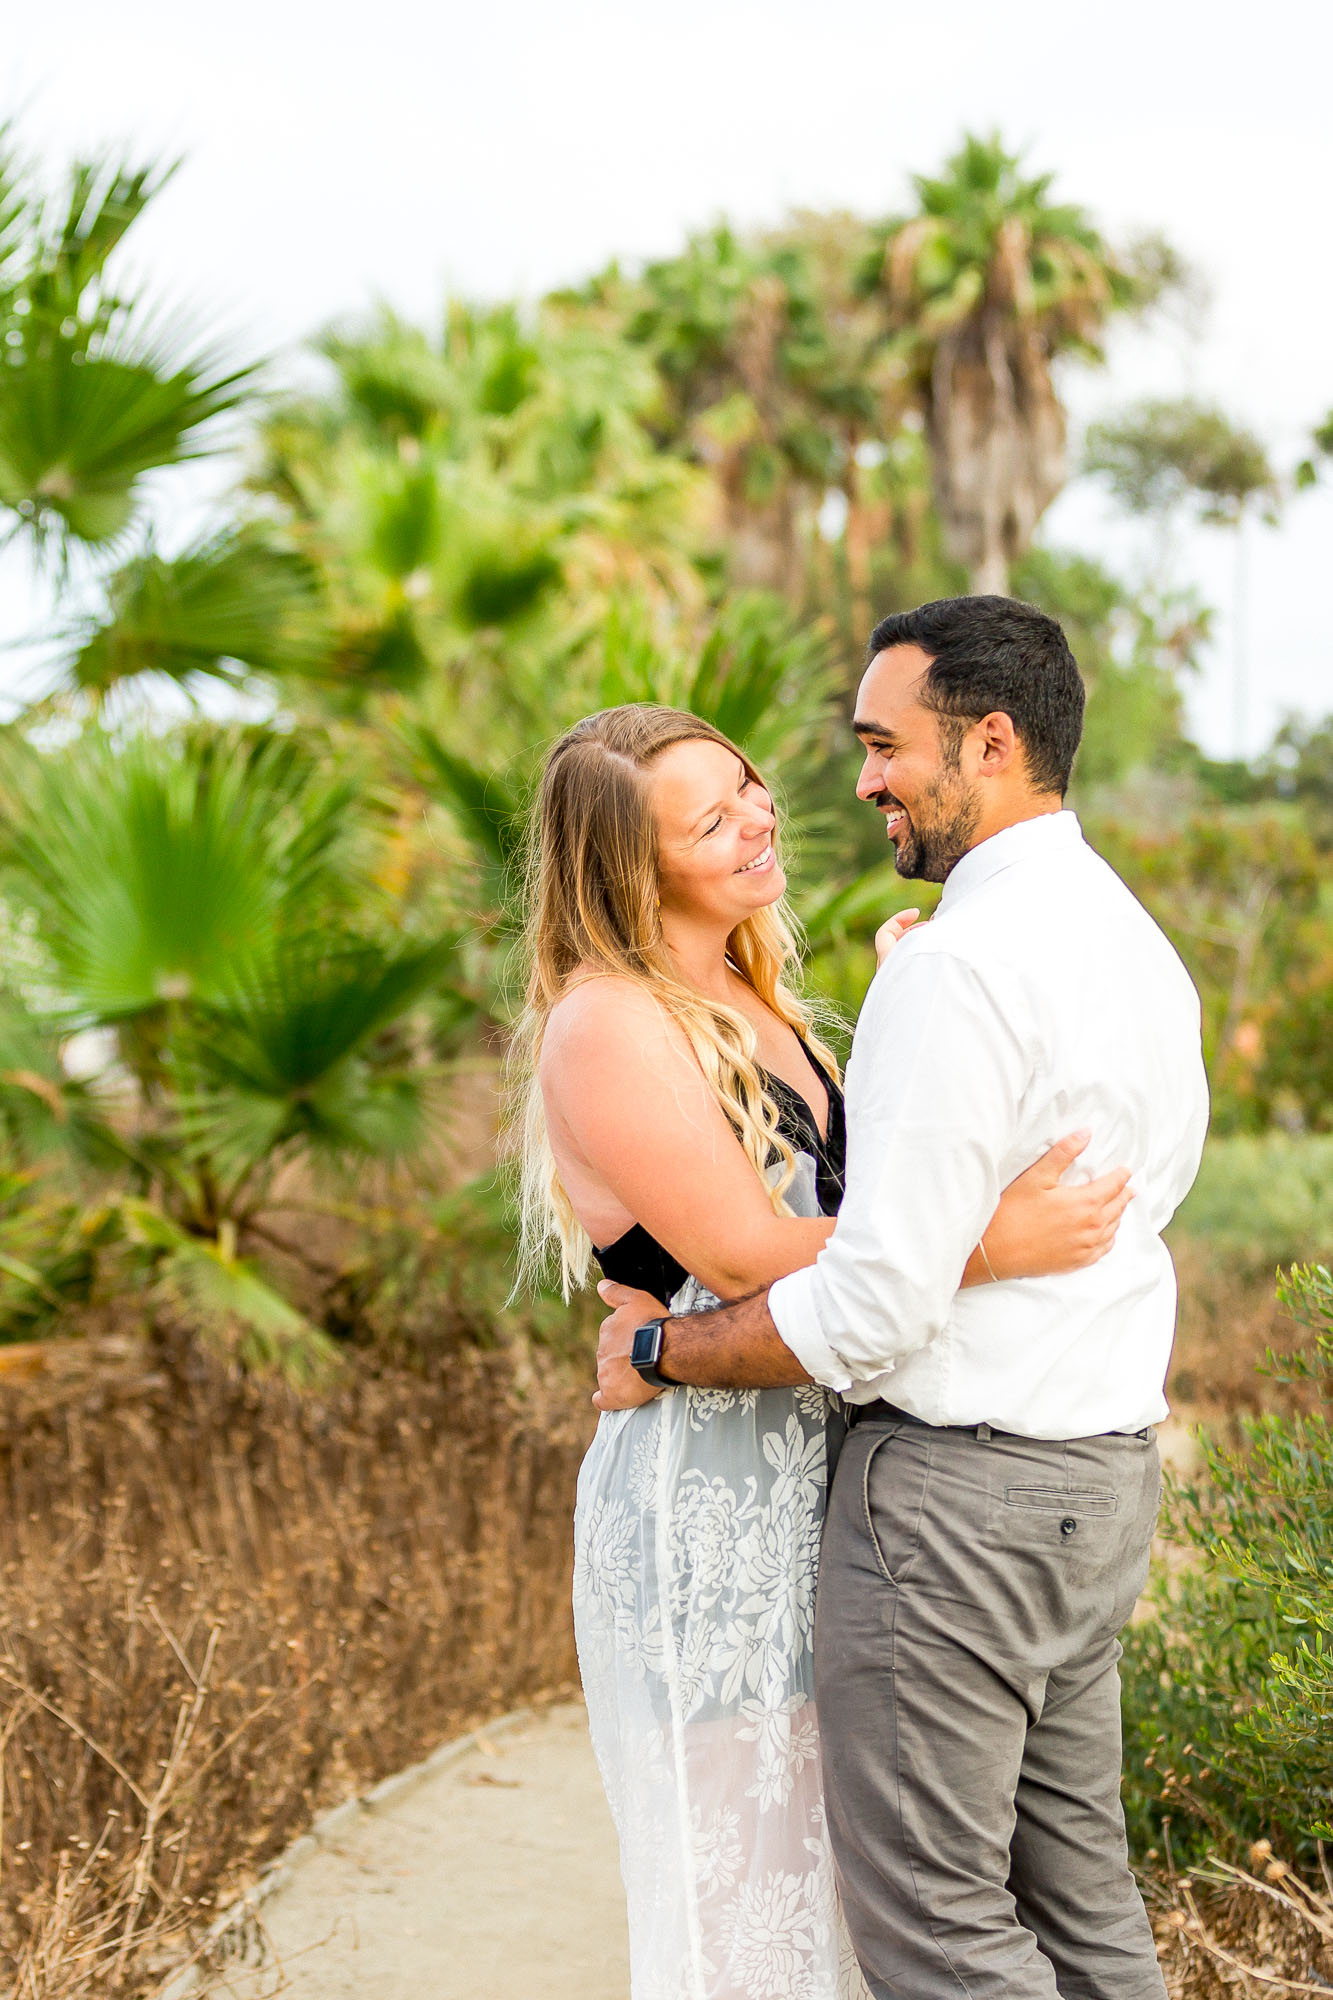 Justine_Puneet_Cardiff_Engagement_Session_104.jpg